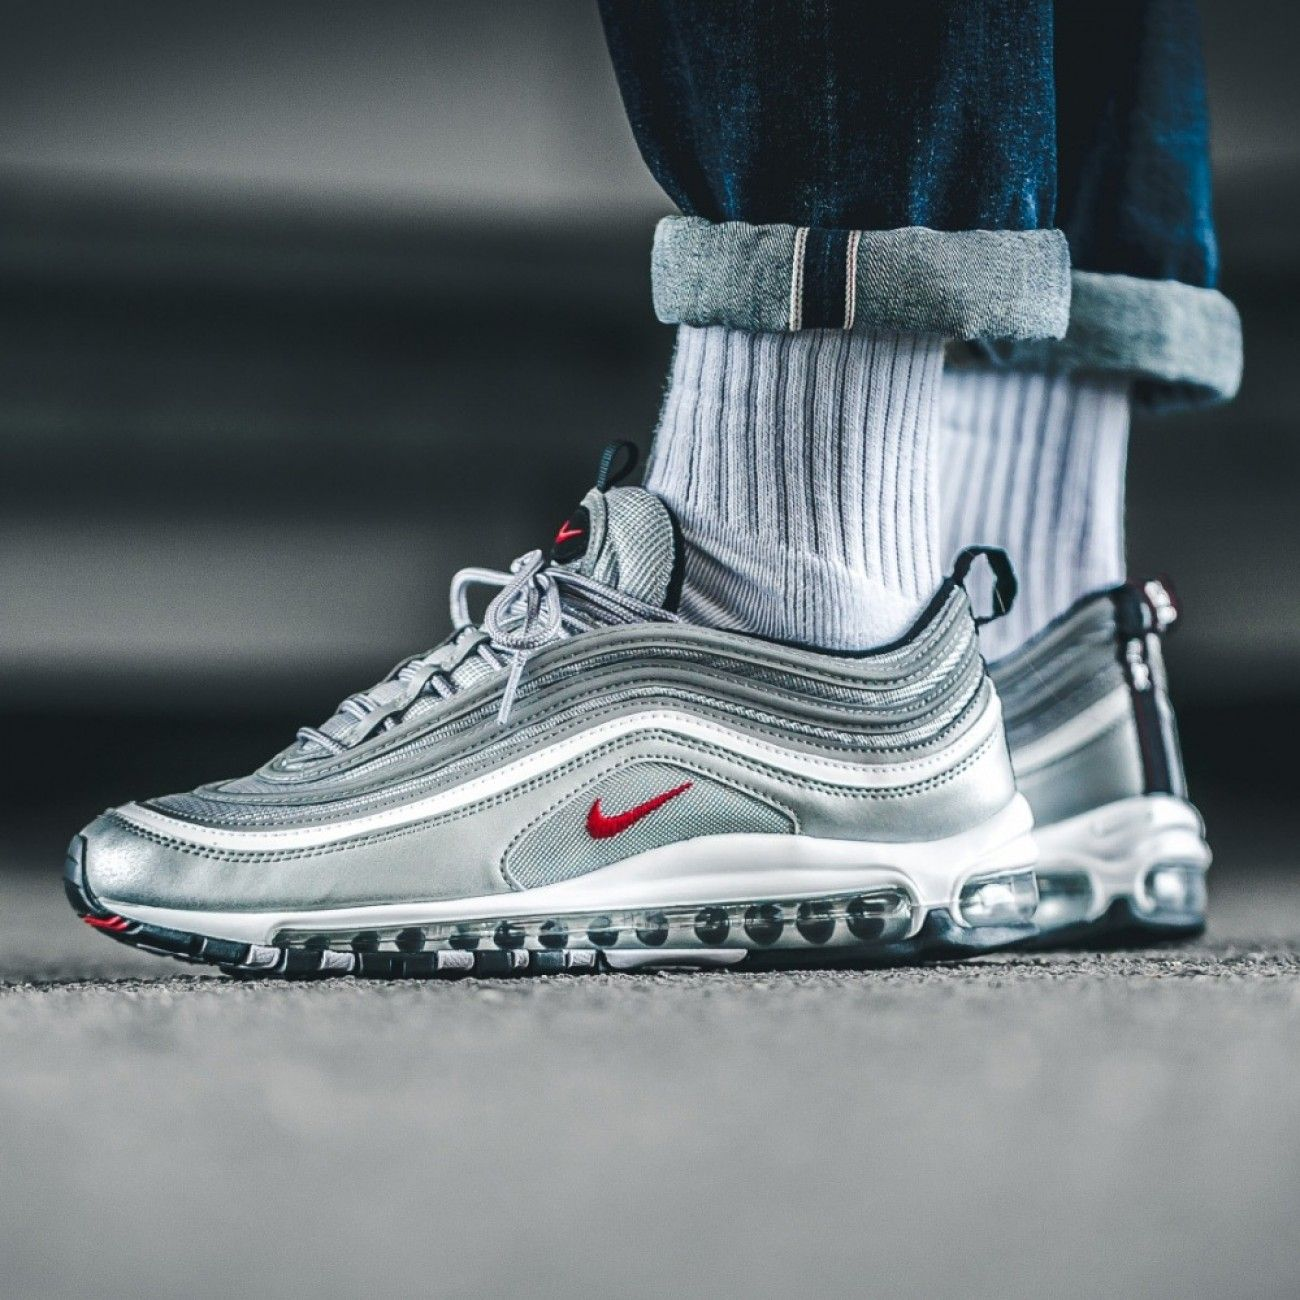 26e88fc53e Nike Air Max 97 OG QS 'Silver Bullet' in 2019 | Shoes | Nike air max ...